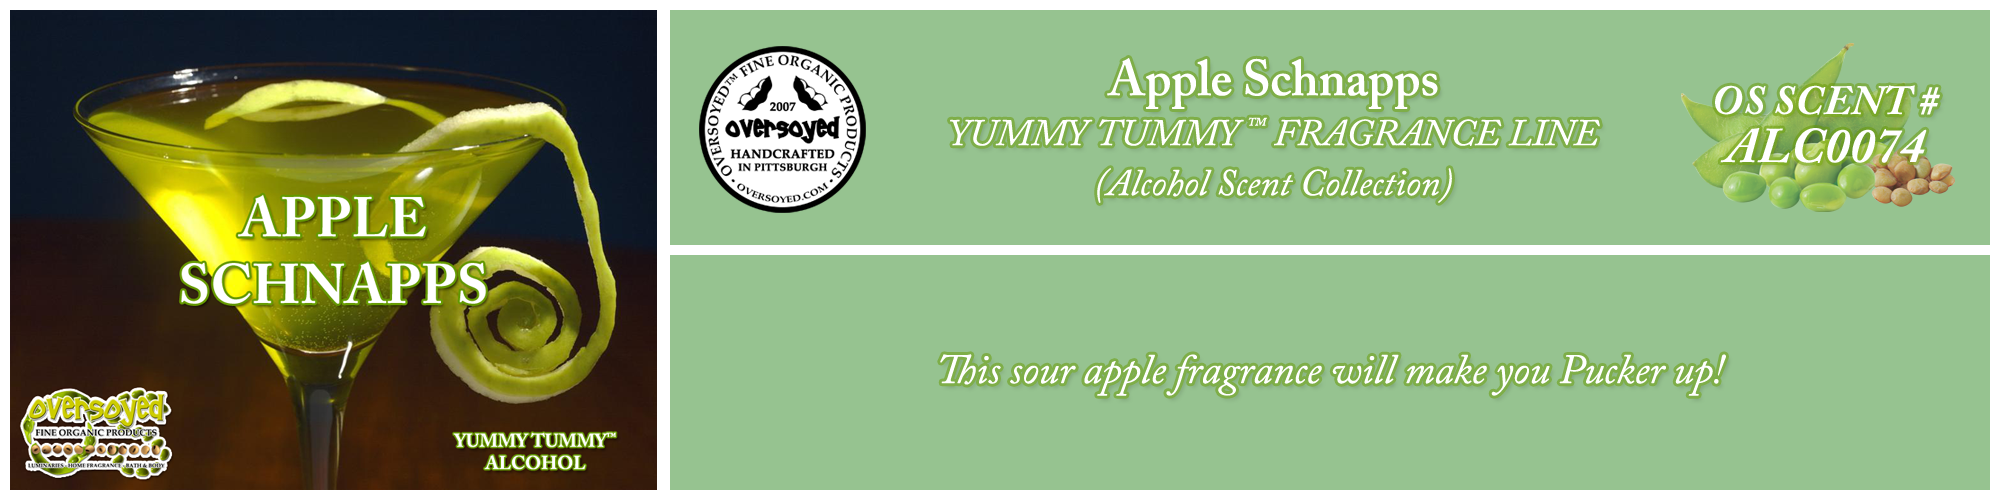 Apple Schnapps Handcrafted Products Collection